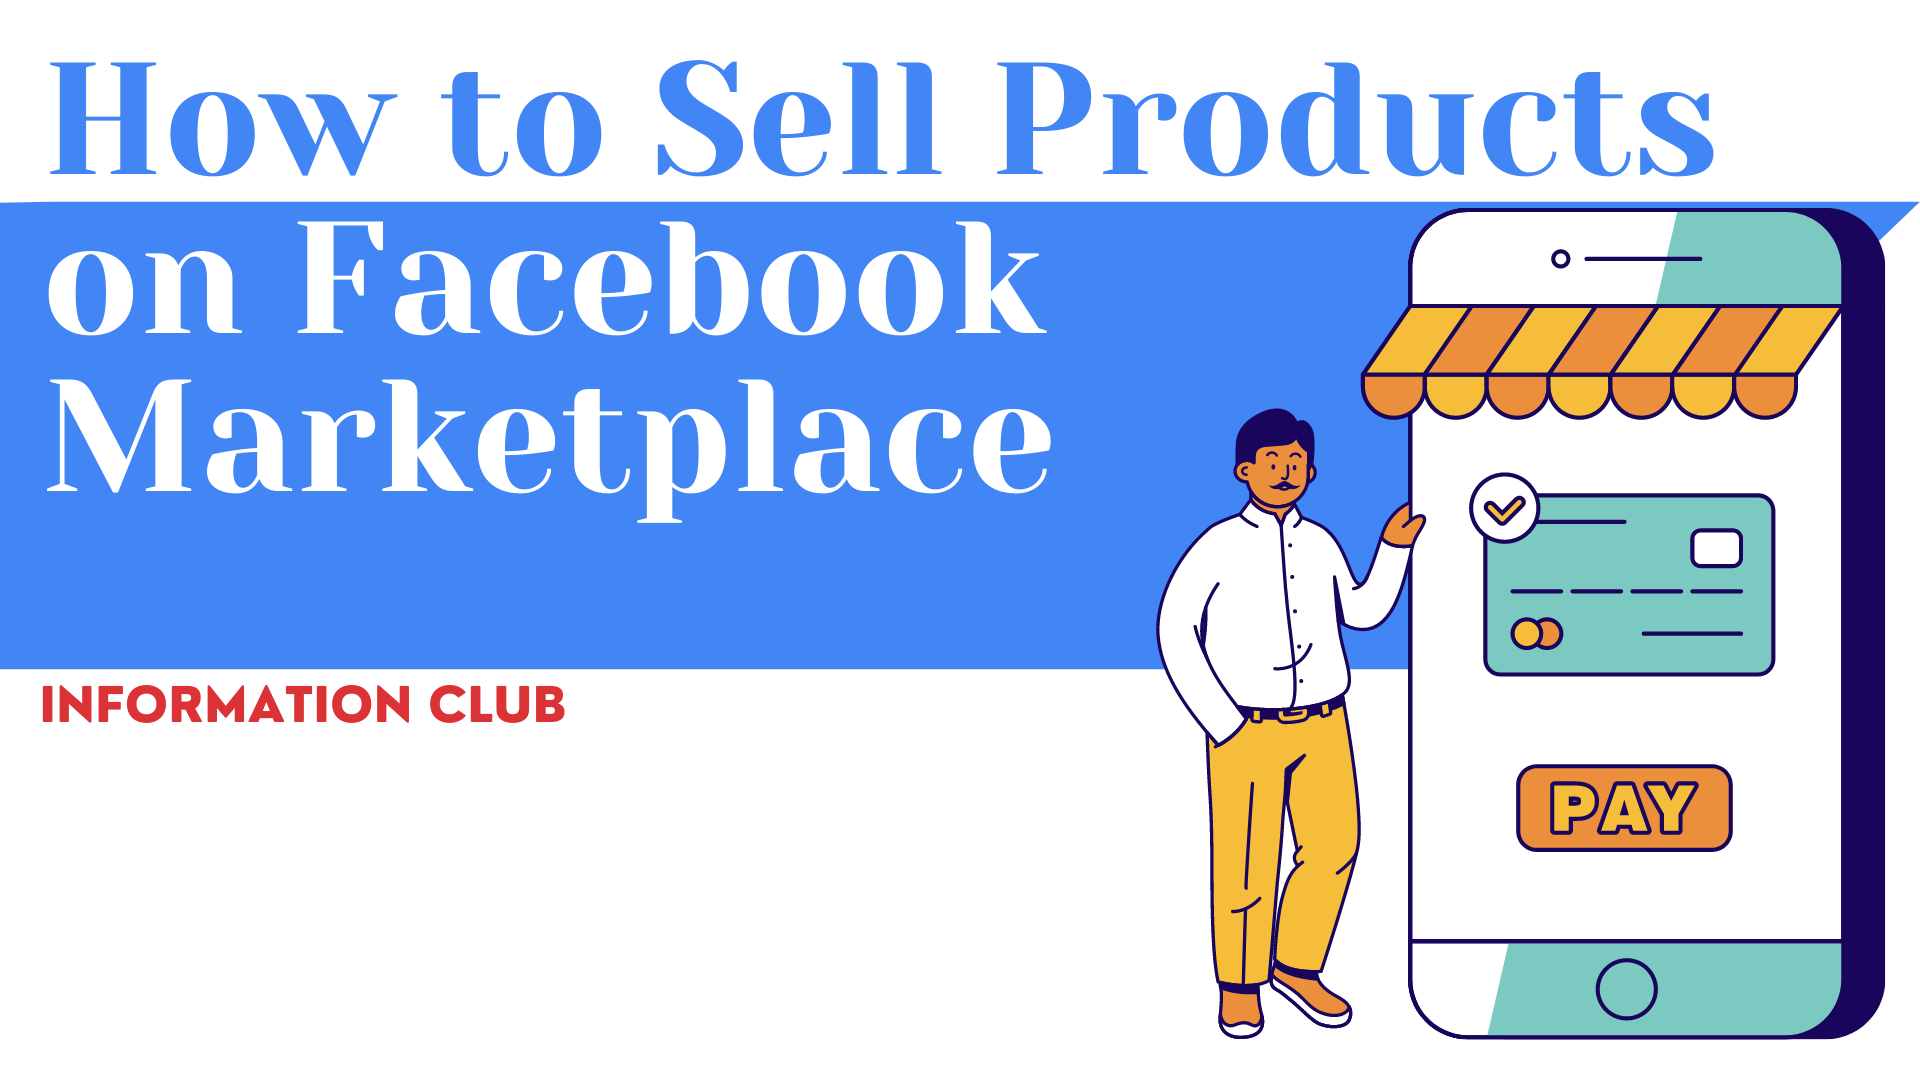 https://www.clubinfonline.com/2021/01/27/how-to-sell-products-on-facebook-marketplace/